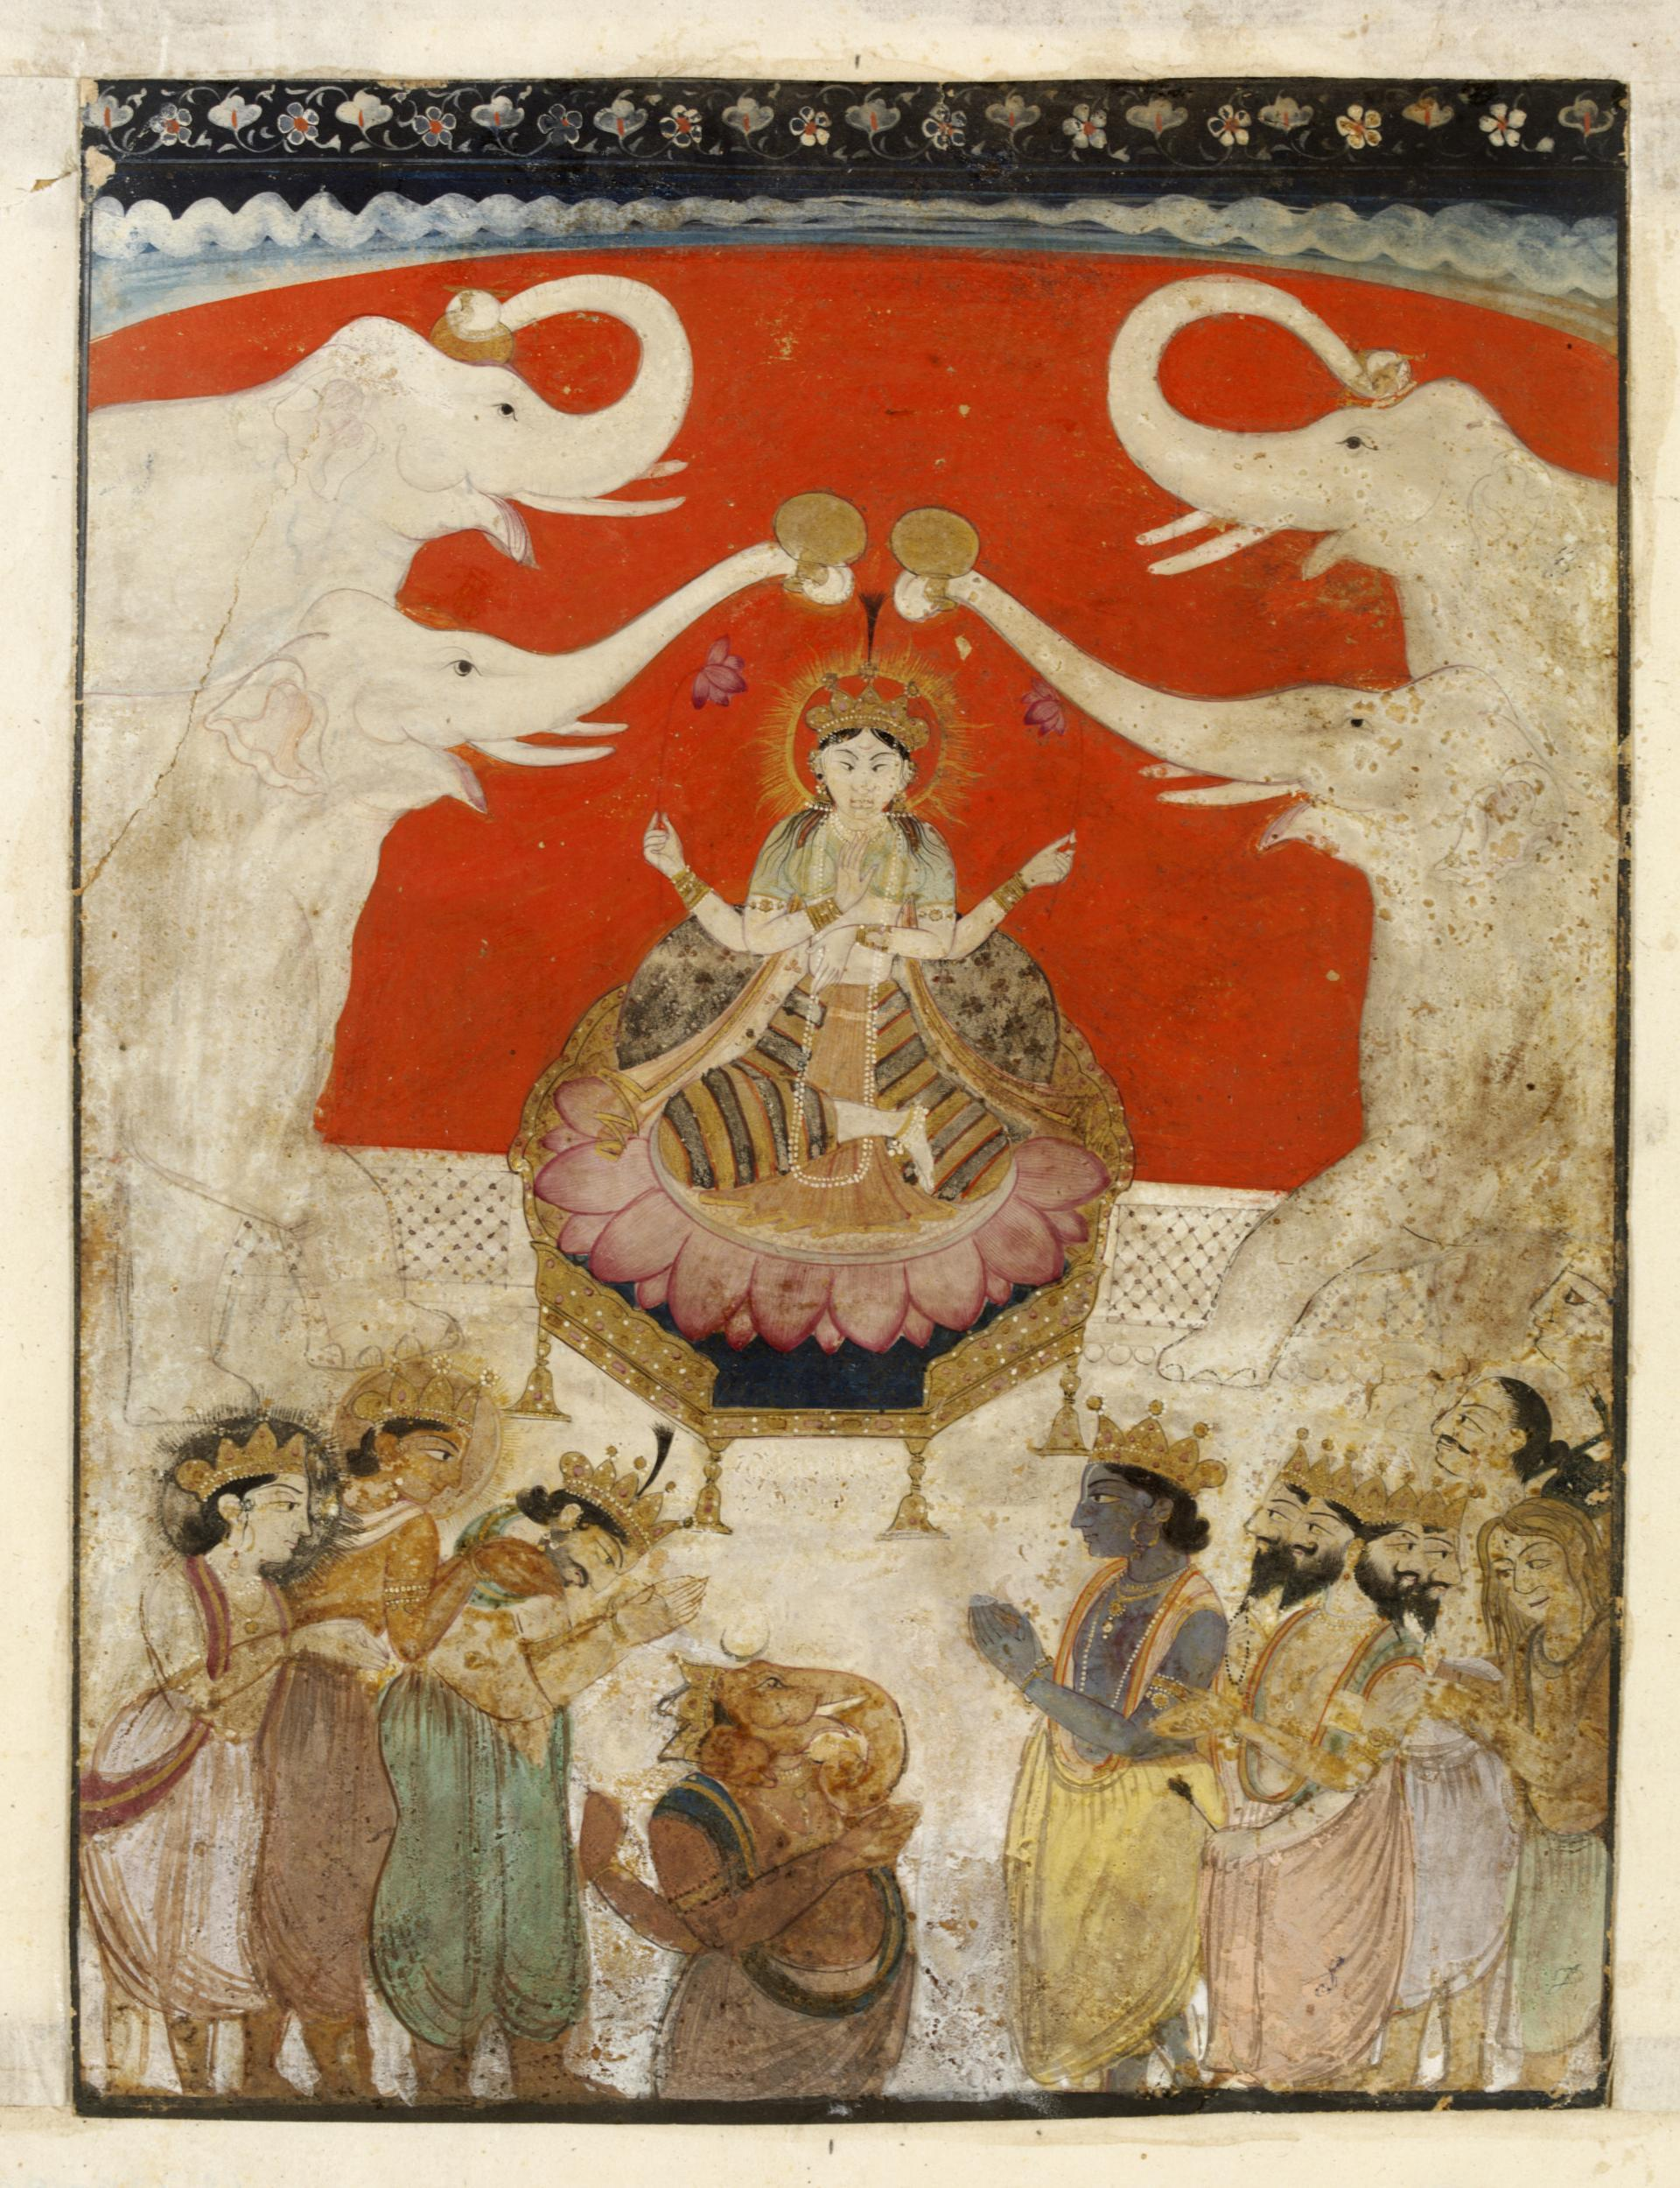 Image of Ganesh, Krishna and Brahma paying respect to Gaja-Lakshmi